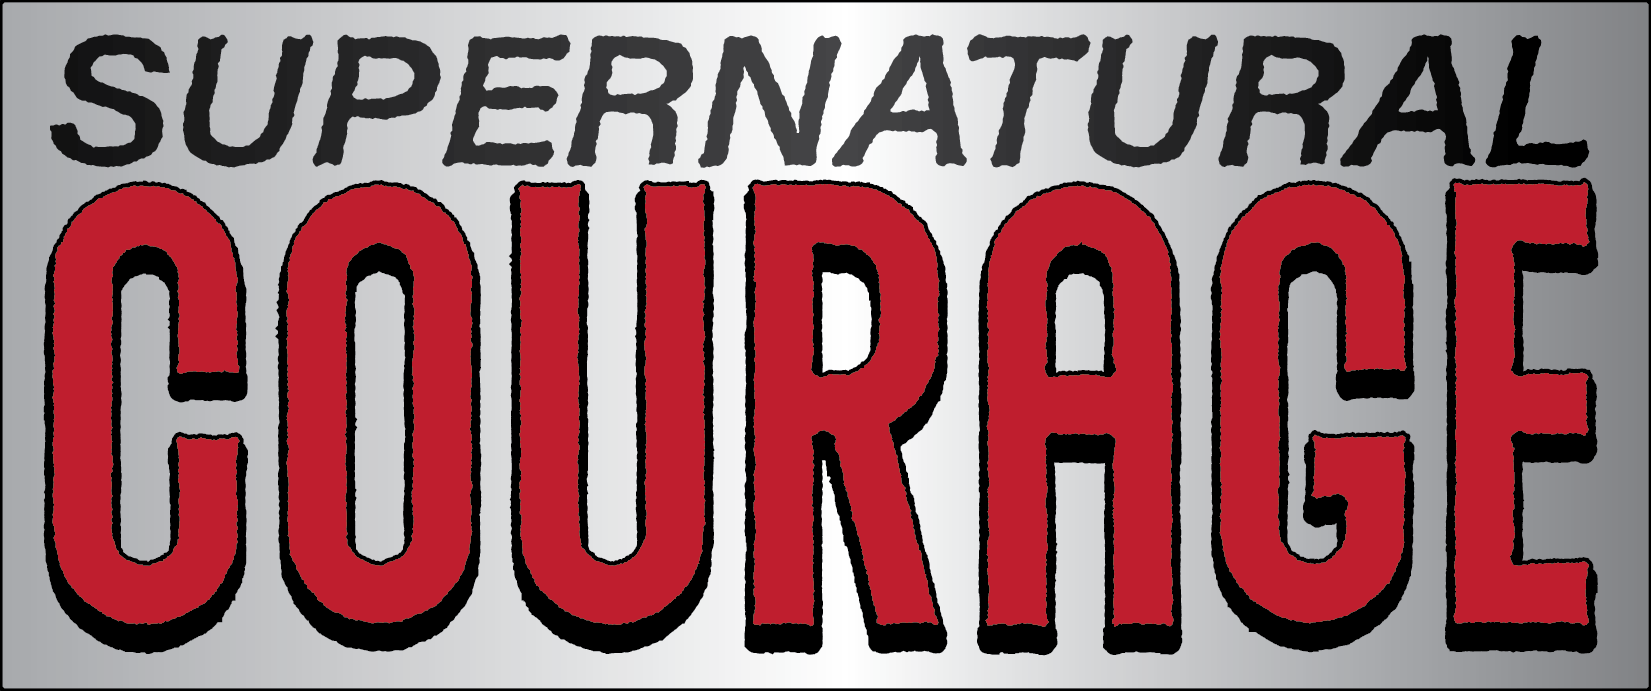 Supernatural Courage Logo-02.png